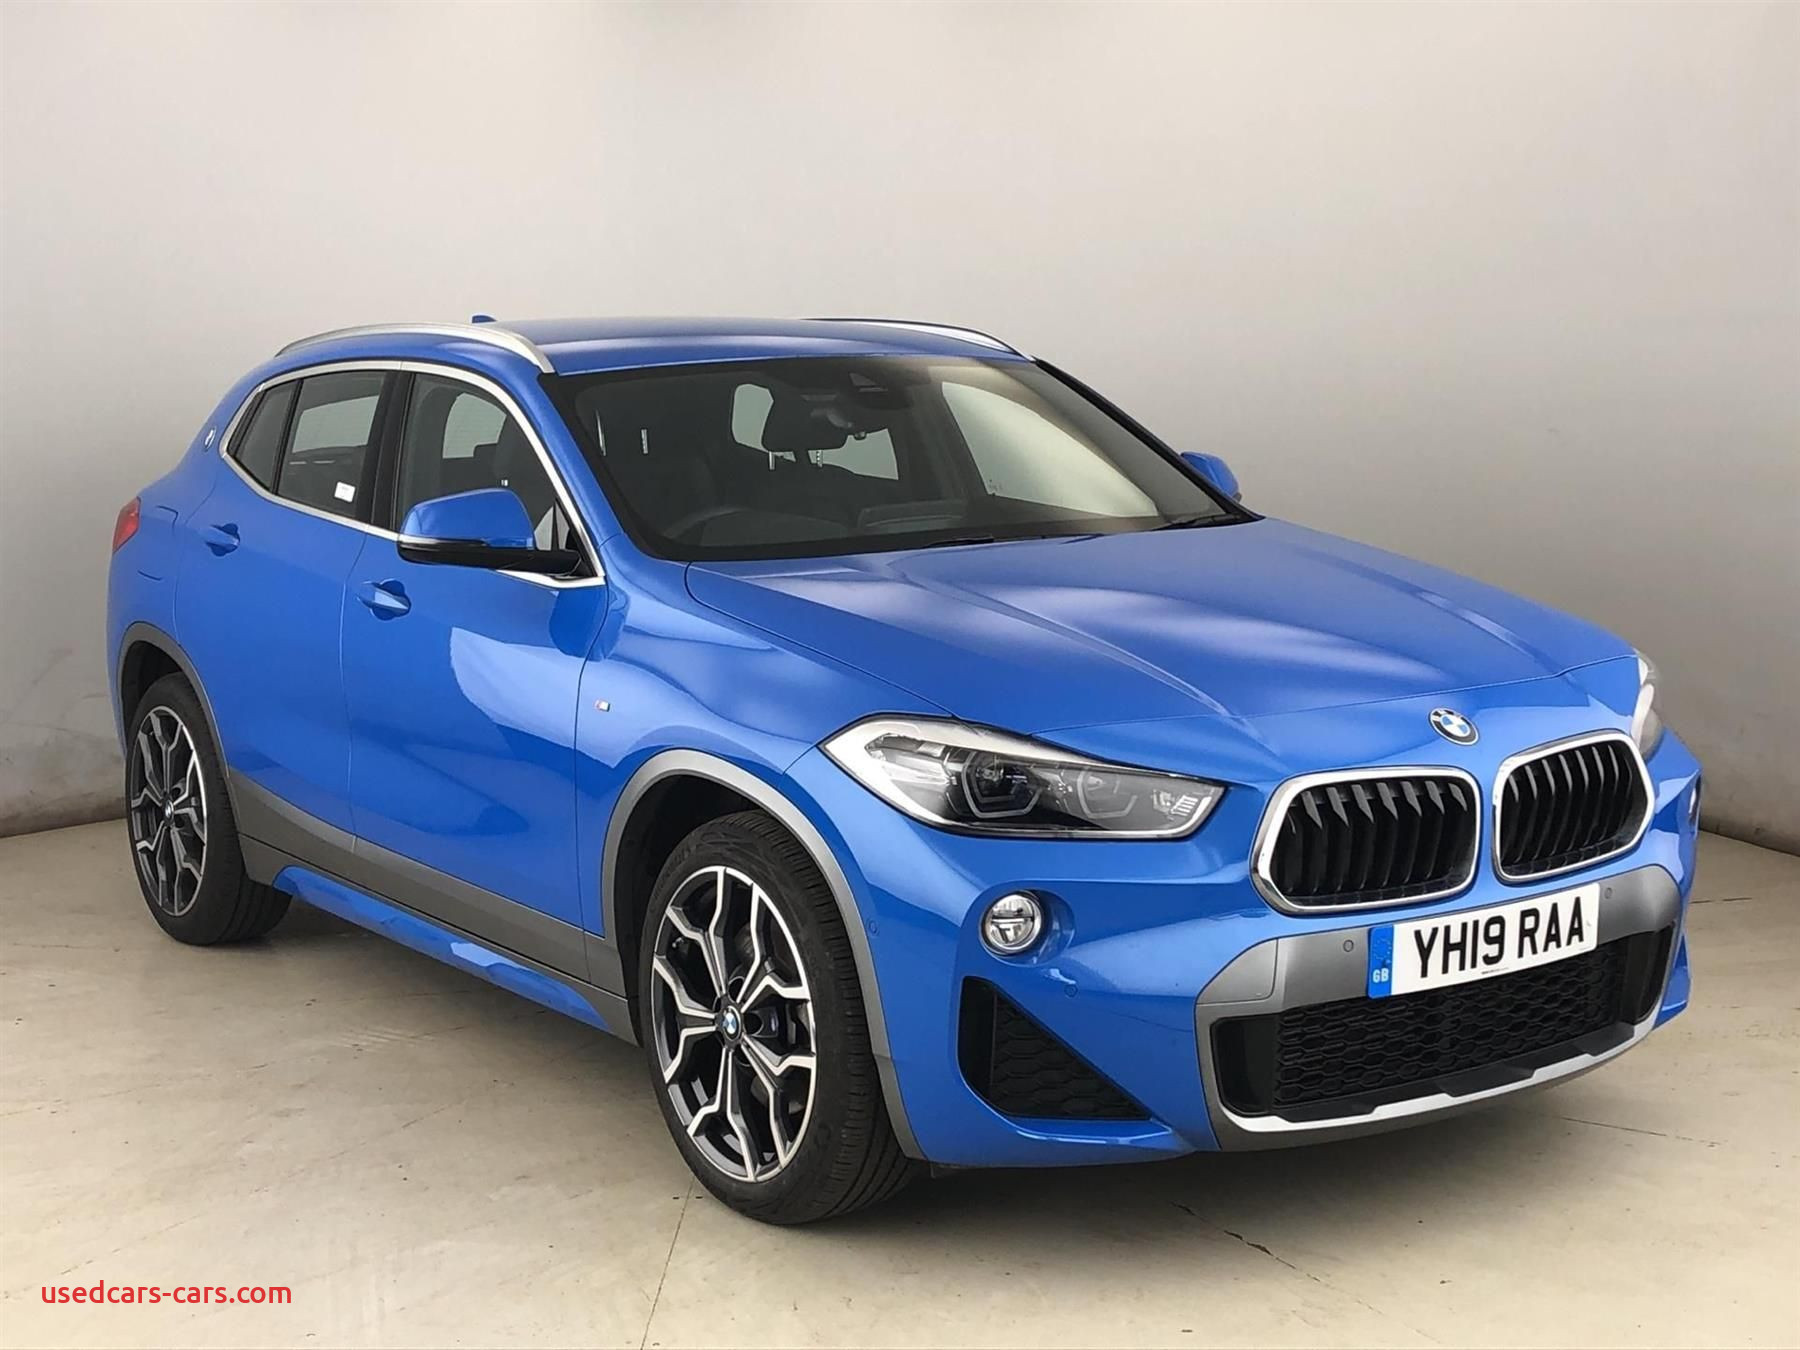 Where Used Cars for Sale Awesome Used Bmw Cars for Sale with Pistonheads